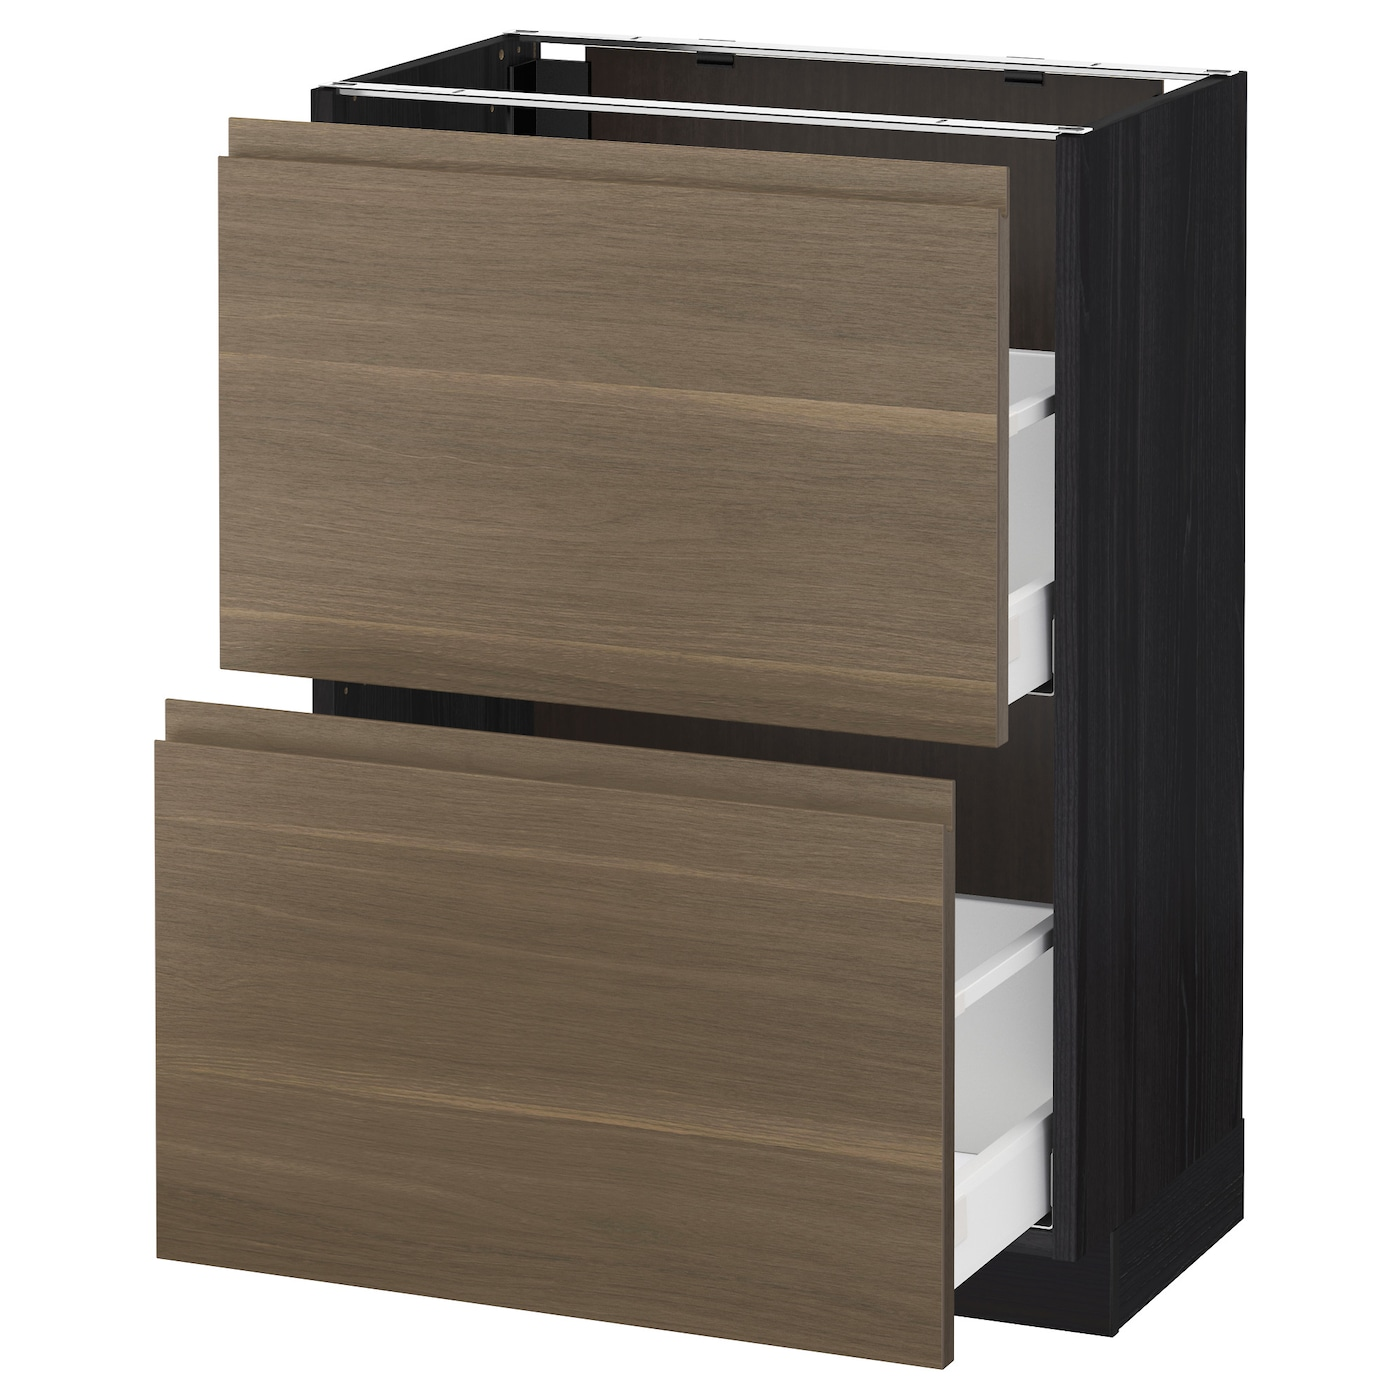 Metod maximera base cabinet with 2 drawers black voxtorp for Black kitchen base cabinets